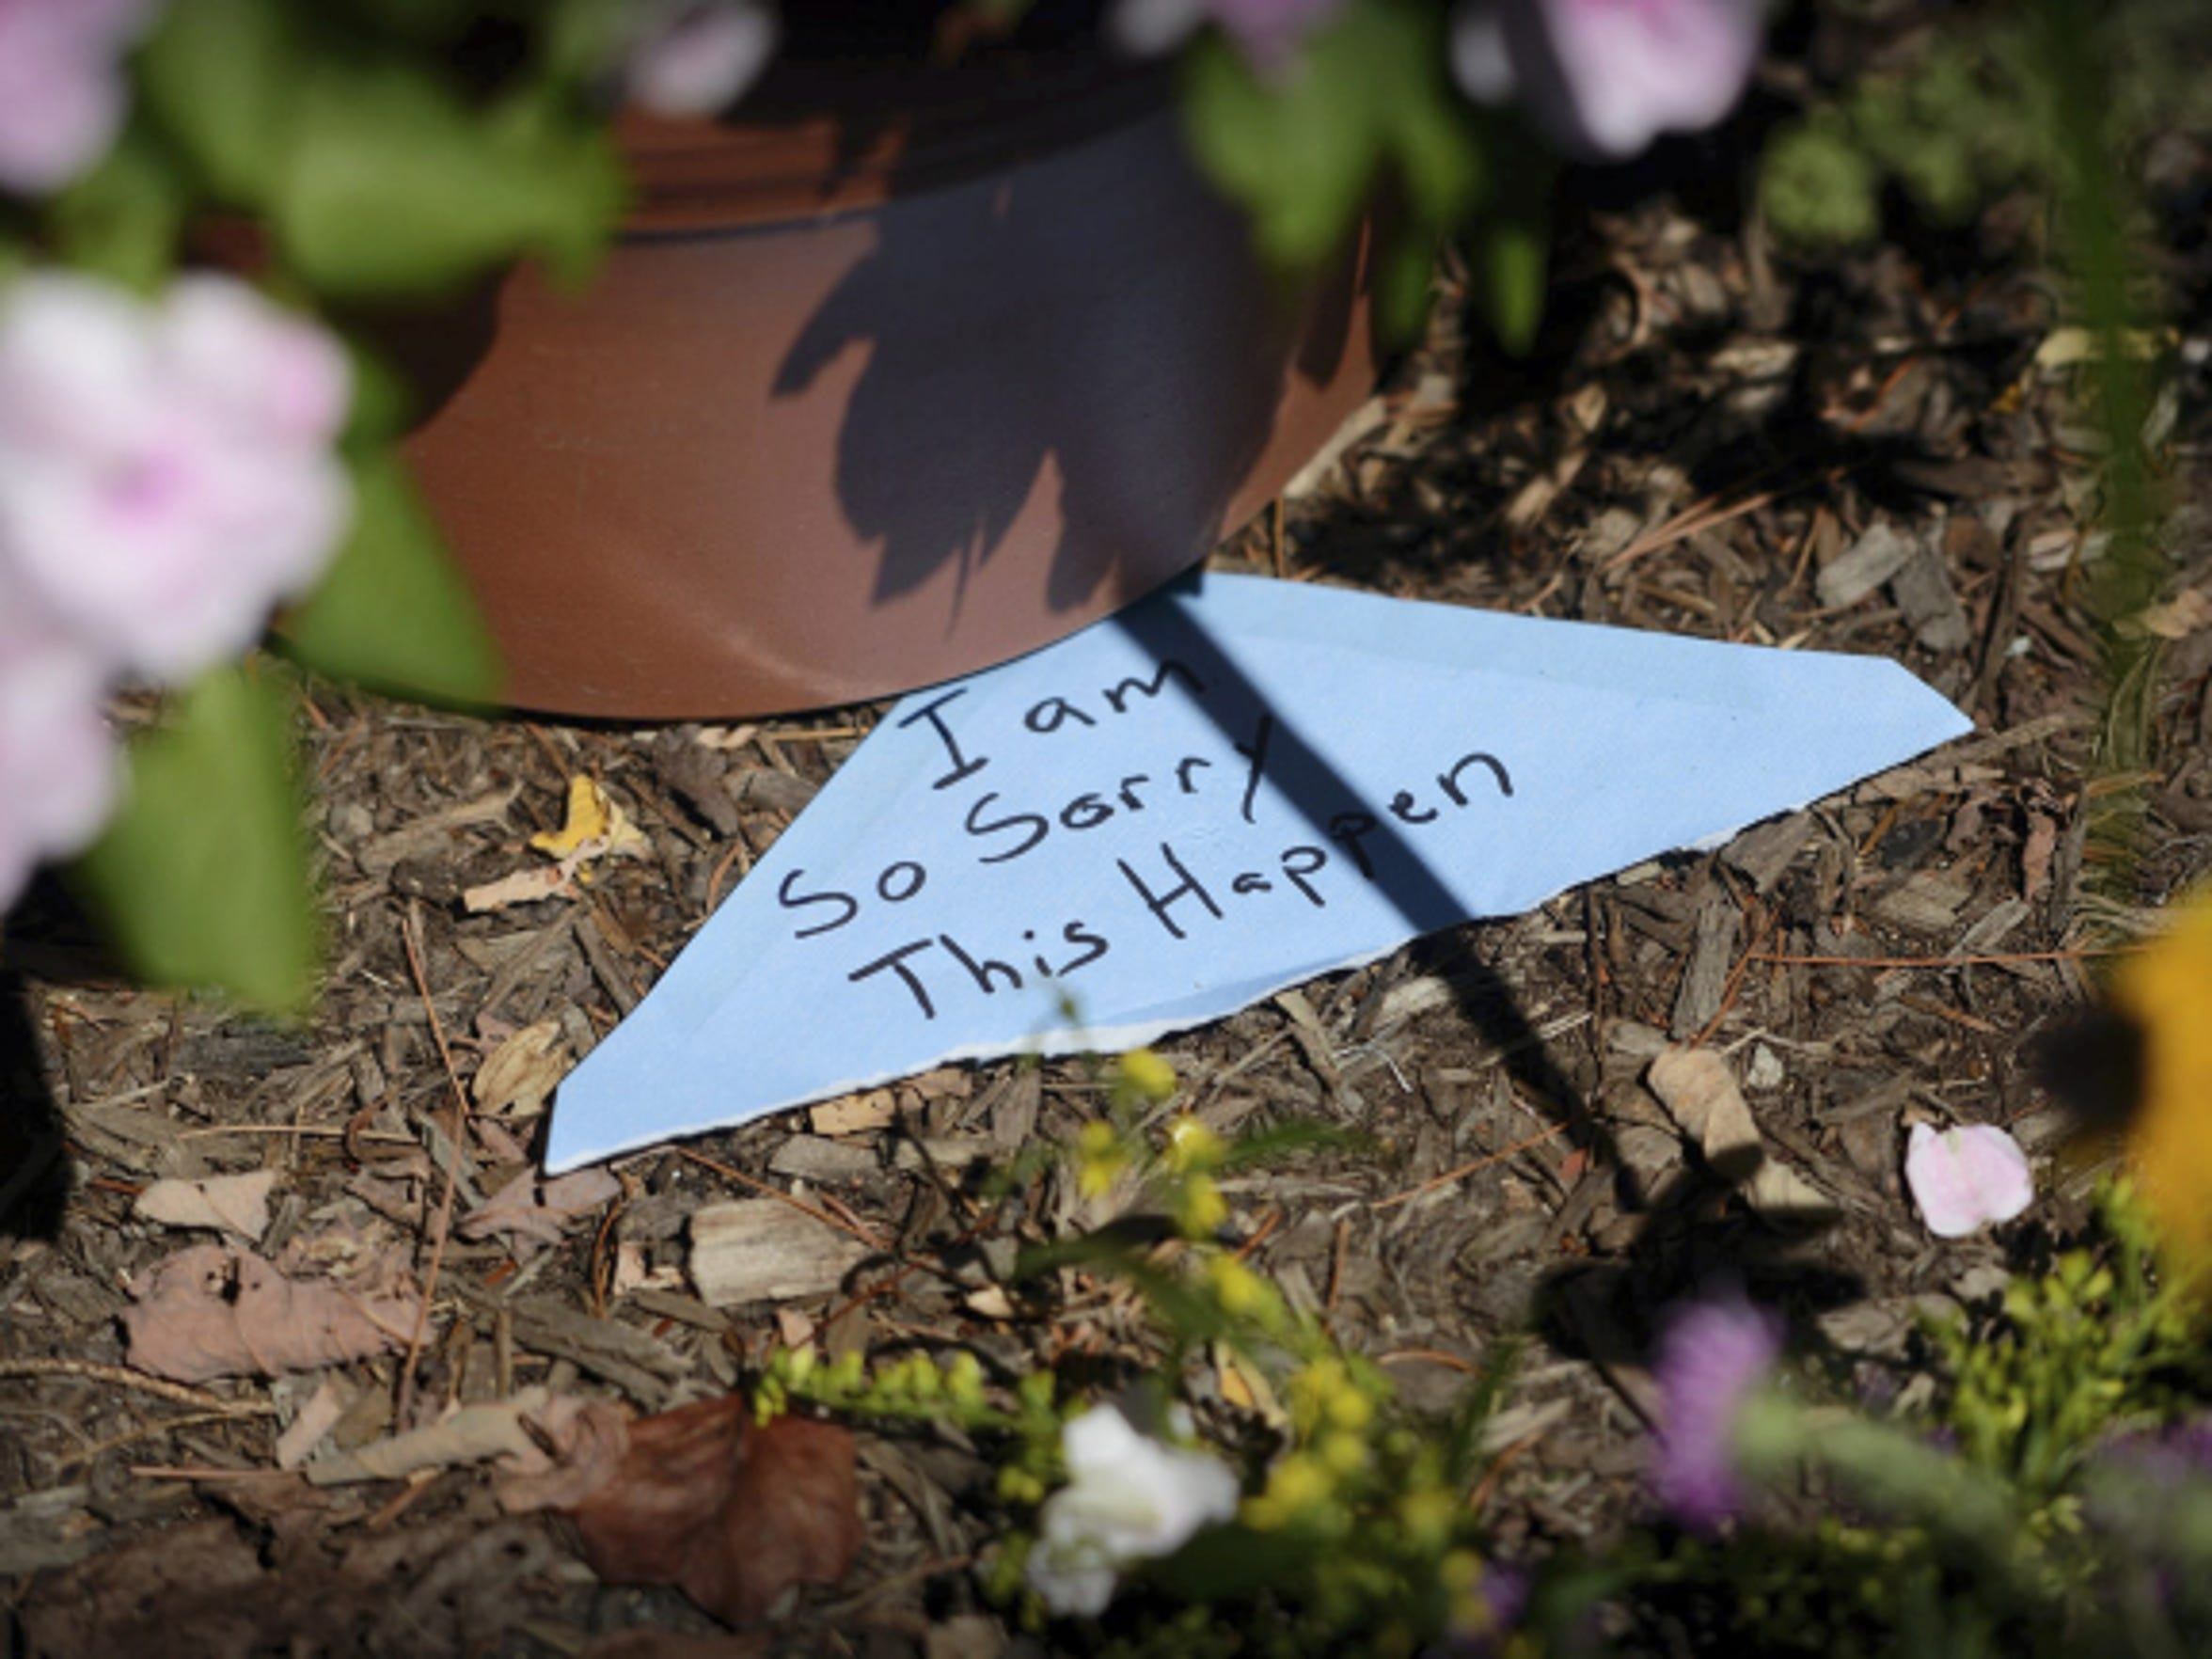 The note expressing sympathy for the shooting death of Stacey Pennington rests on the ground in the Fairy Garden outside the Gretna Emporium gift shop, which Pennington owned.